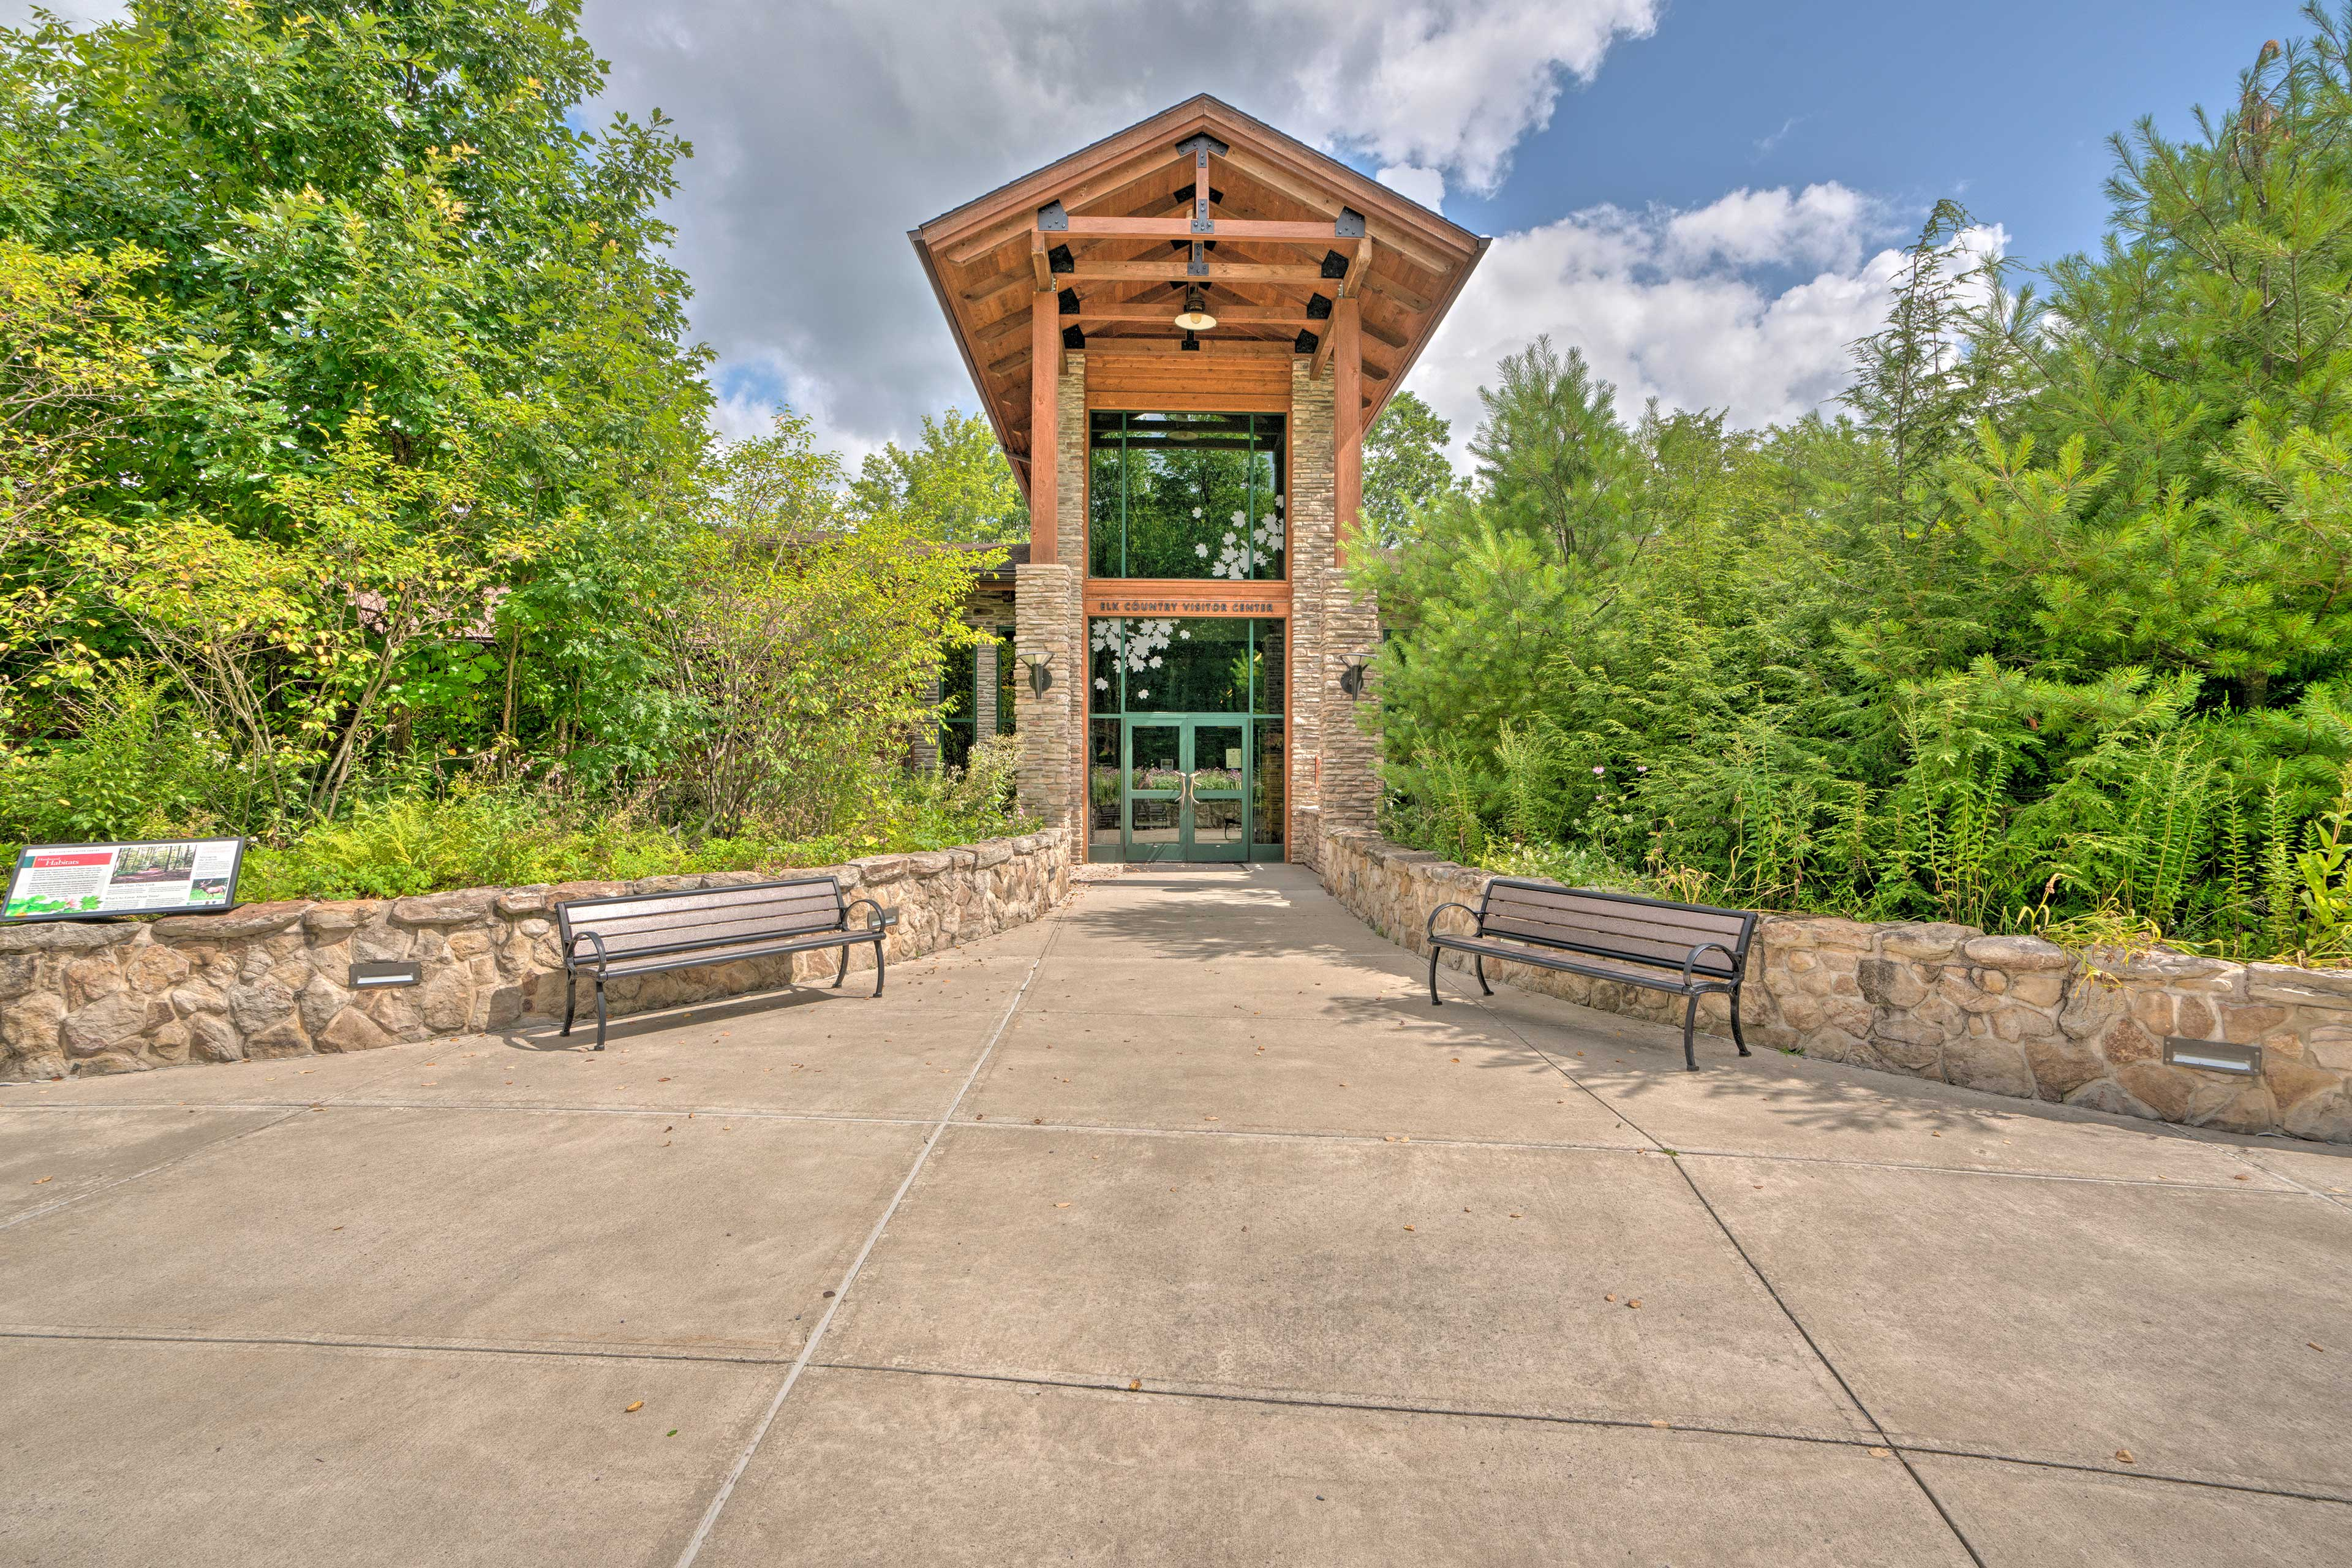 Head to the visitor center to explore the area.